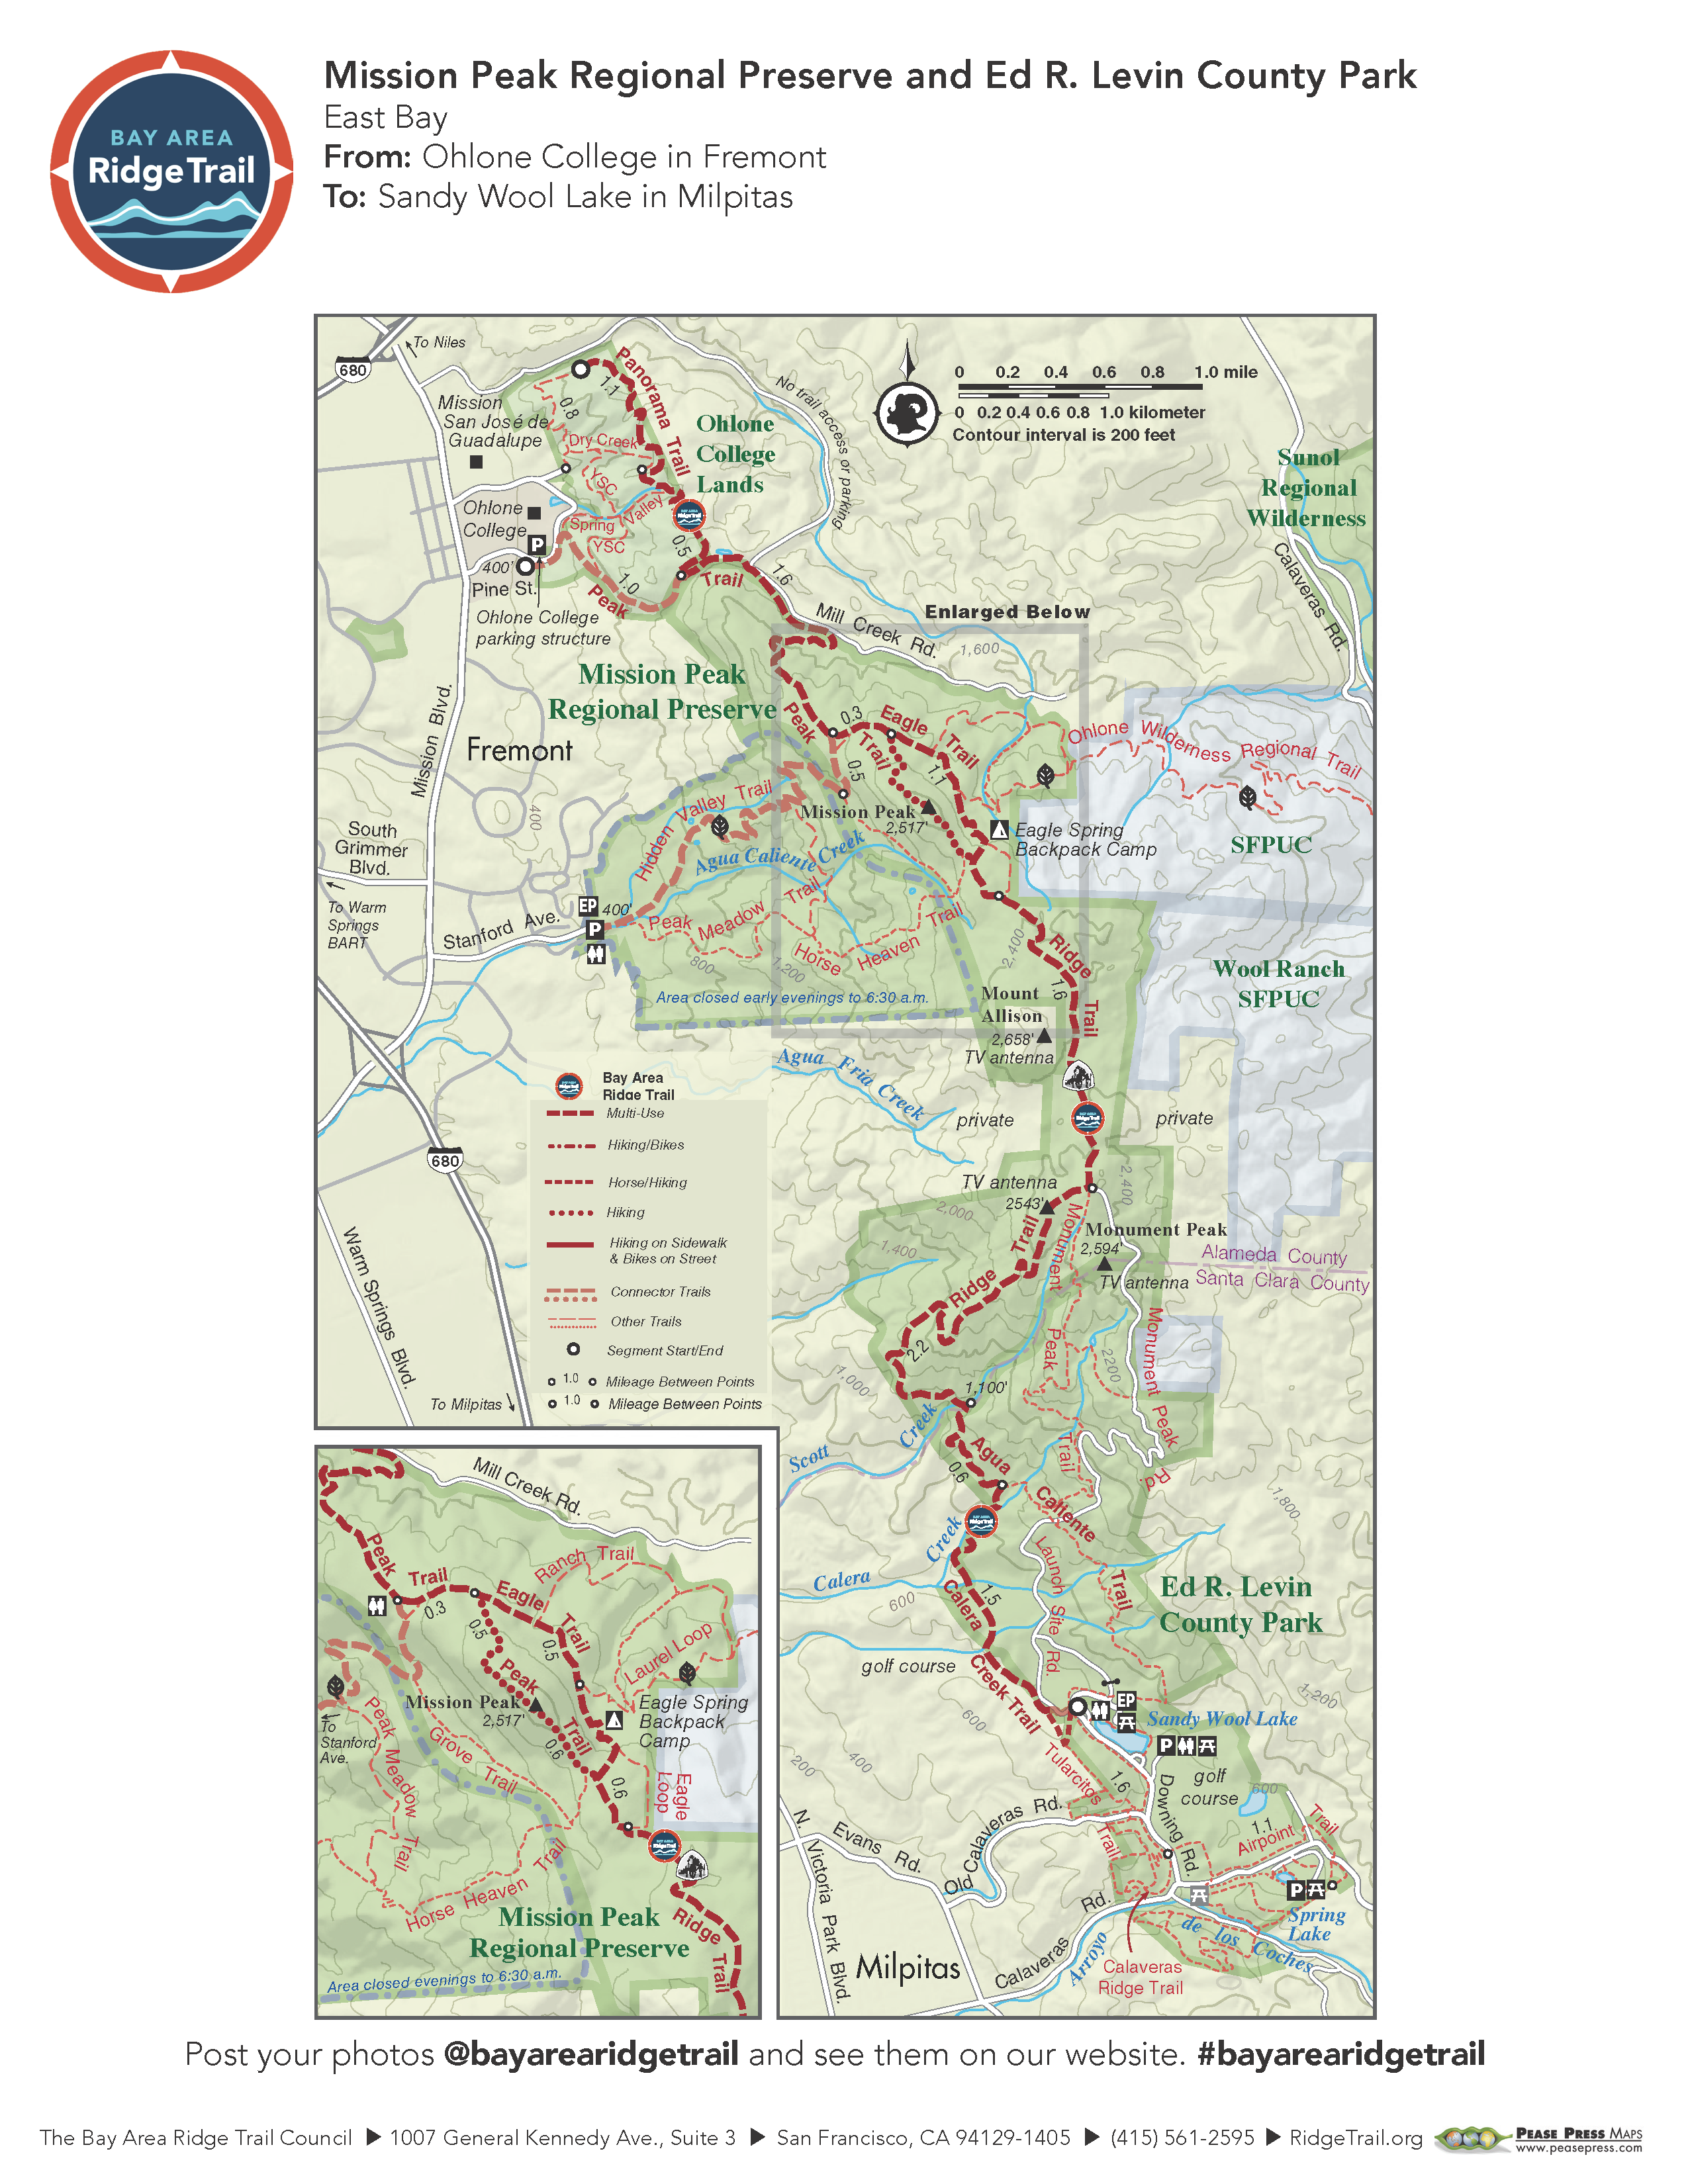 Mission Peak Regional Preserve and Ed R. Levin County Park